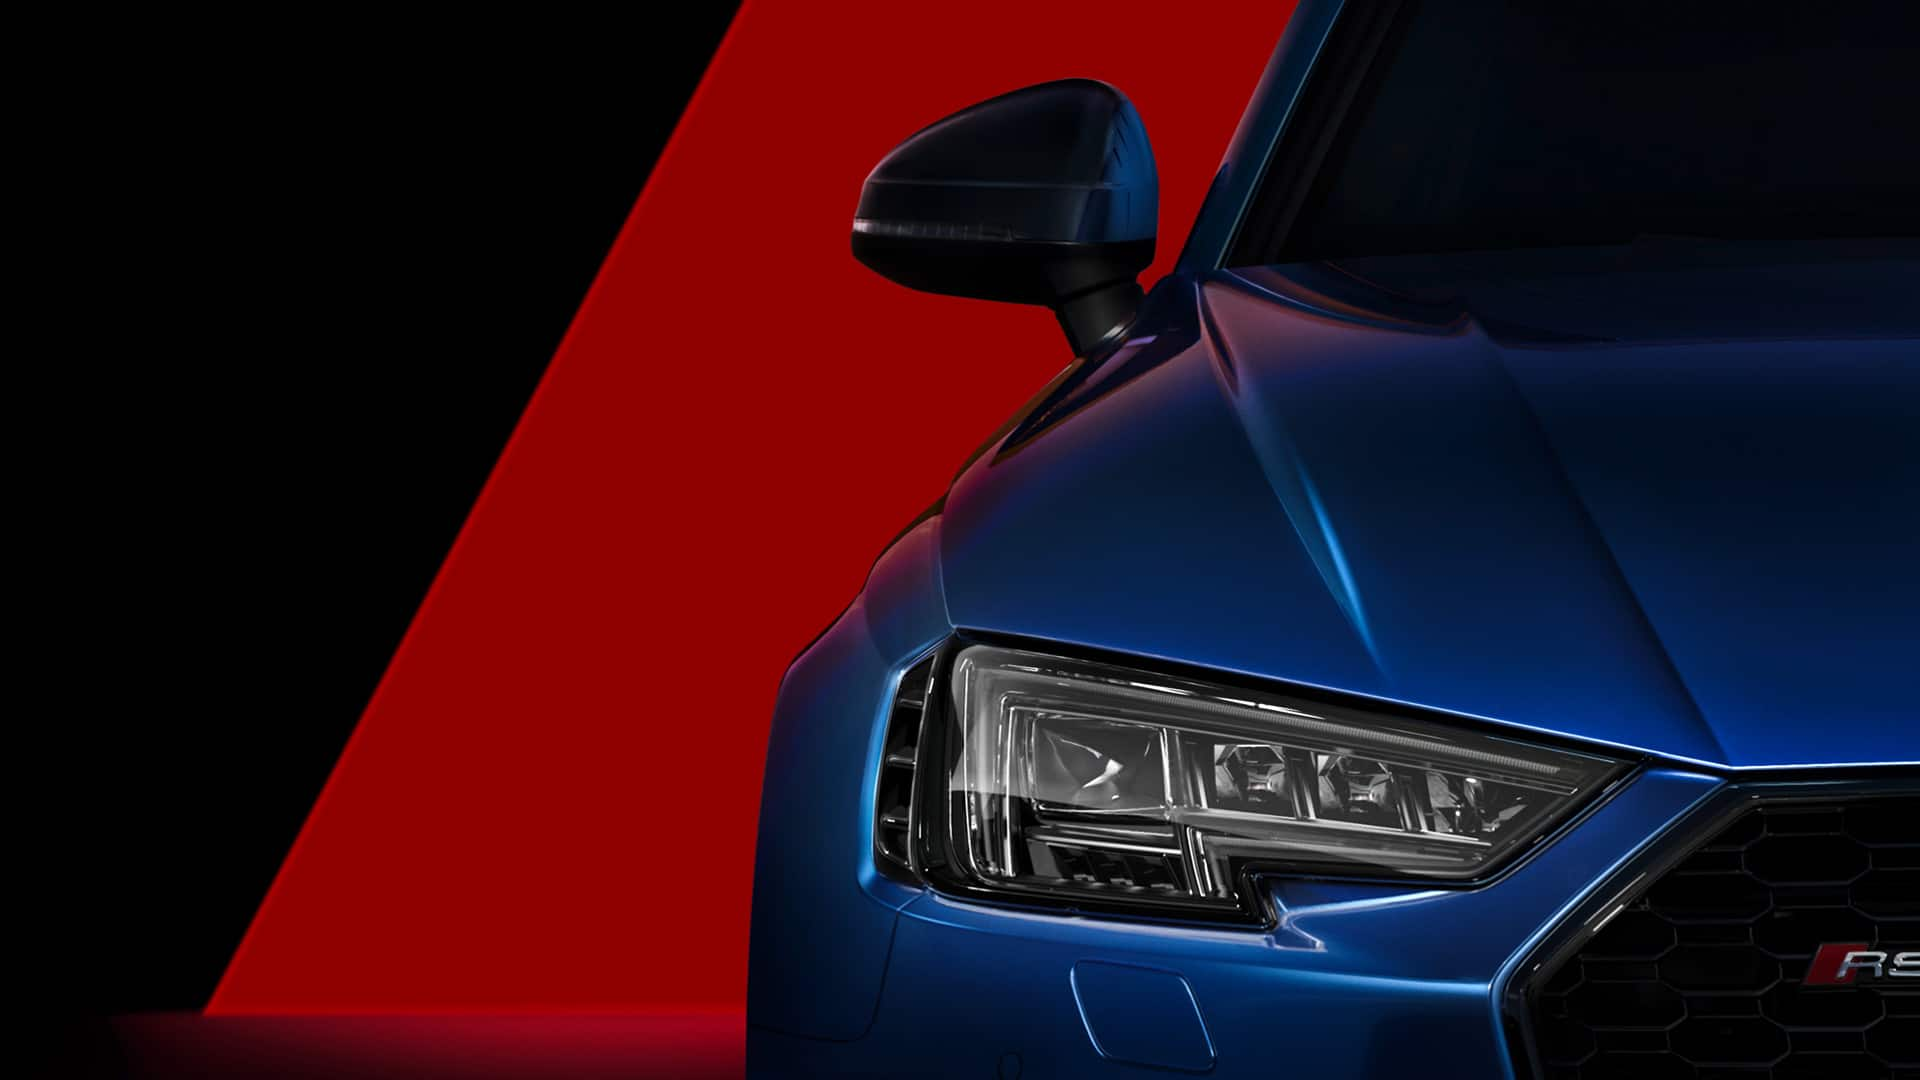 The optional Audi Matrix LED headlights with dynamic flashing lights attest to the power of the Audi RS 4 Avant.